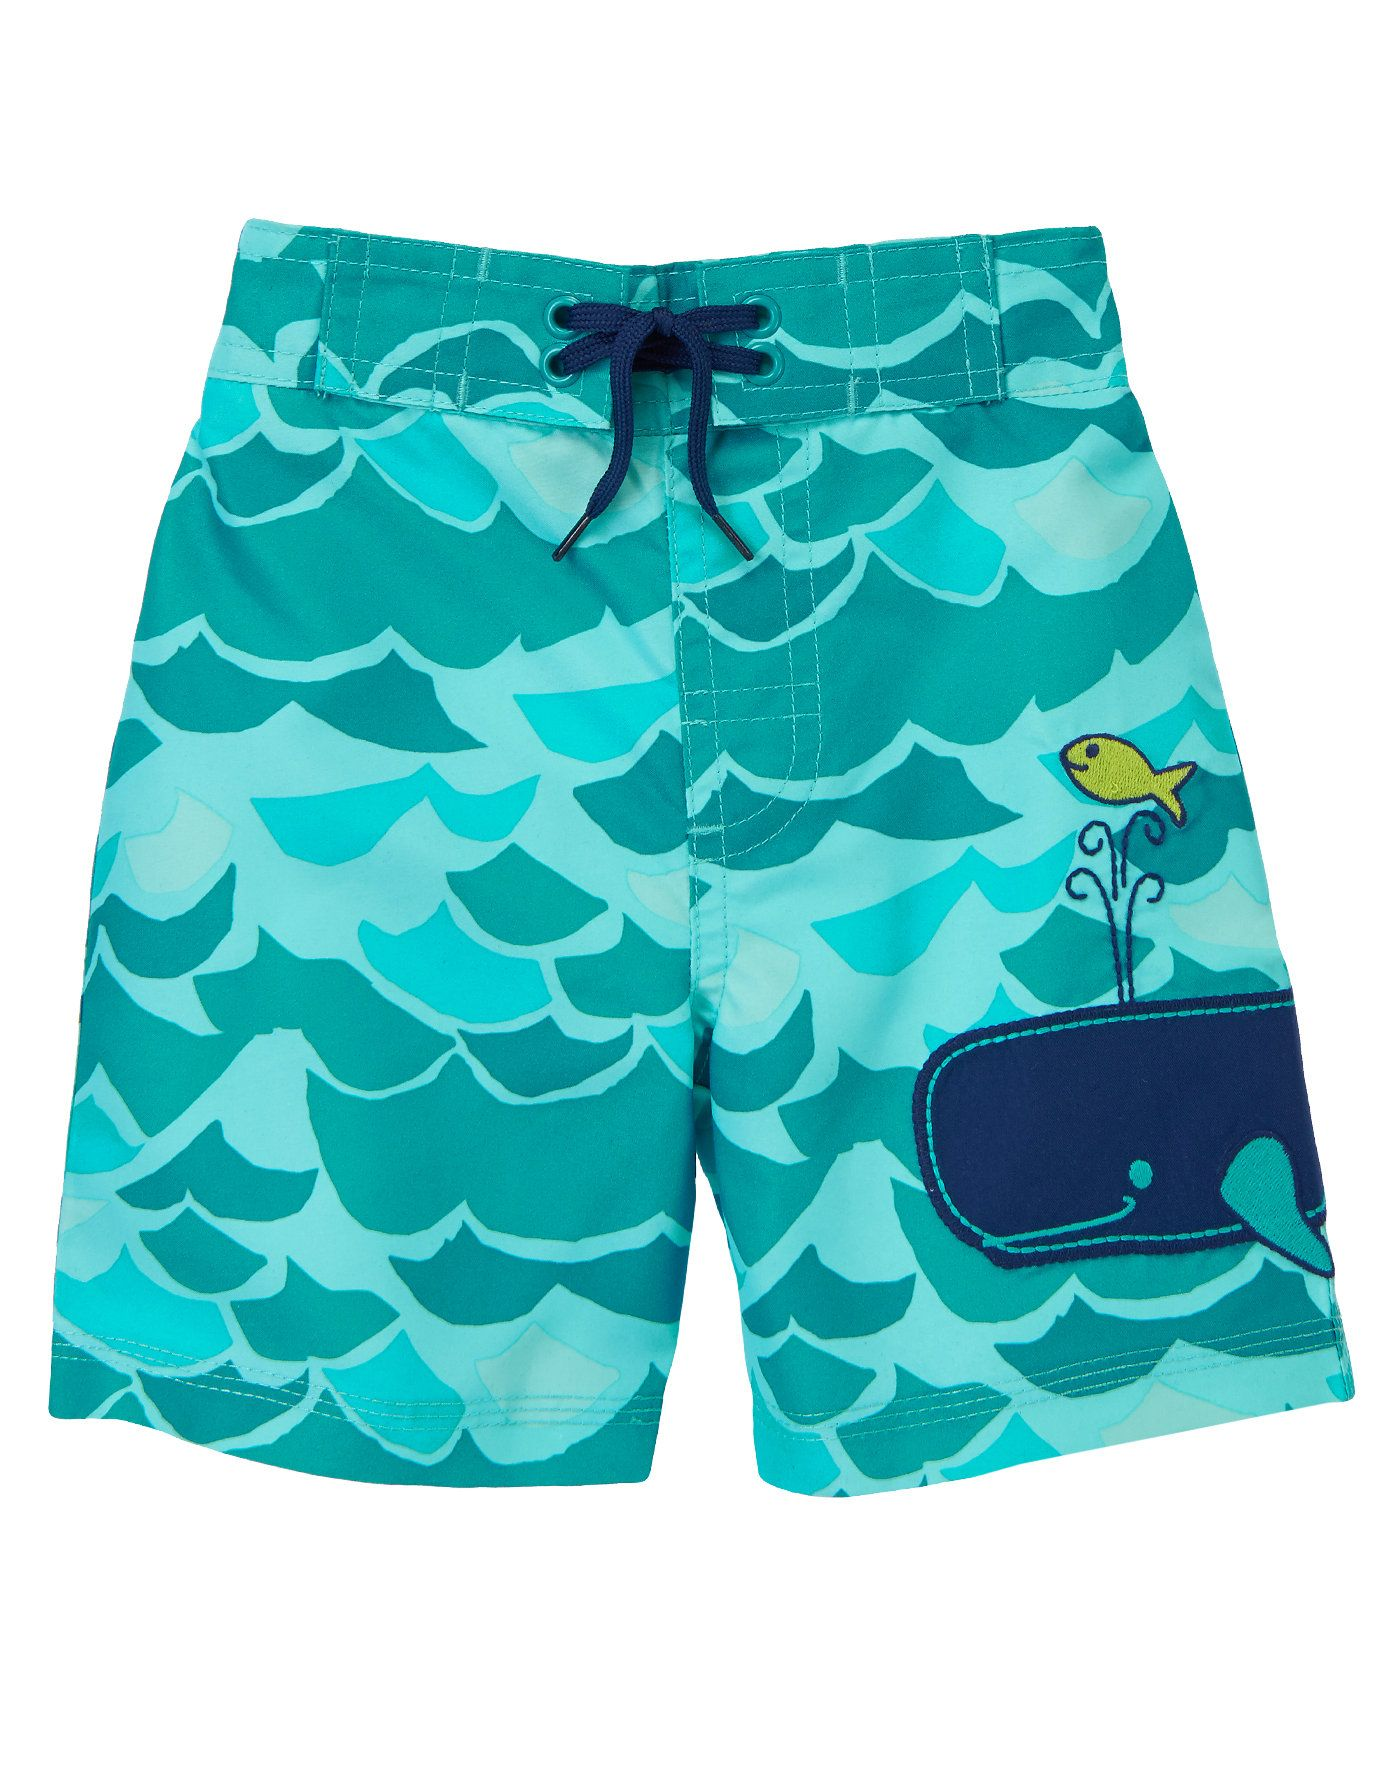 d82e061258 Water baby sports under-the-sea style in our wave and whale swim trunks  with back pocket. Graphic waves make an allover pattern in dreamy sea  colors, ...